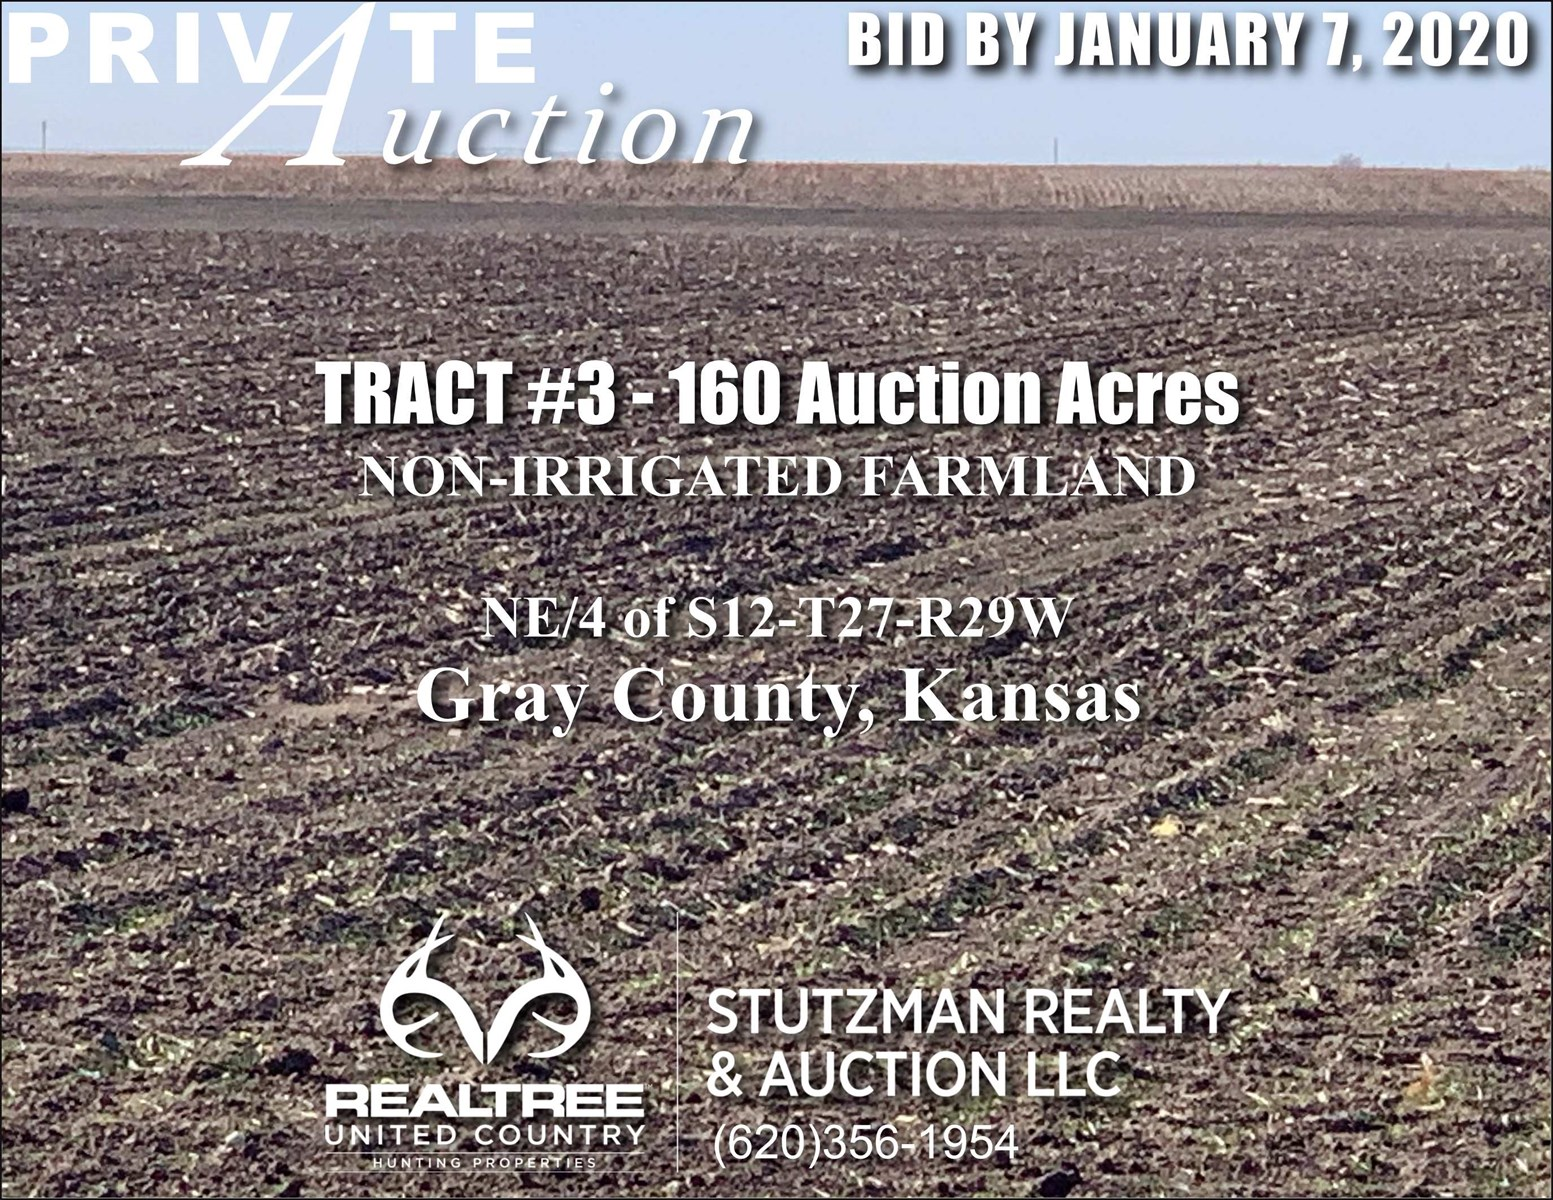 GRAY COUNTY KS - TR #3 - 160 ACRE NON-IRRIGATED FARMLAND